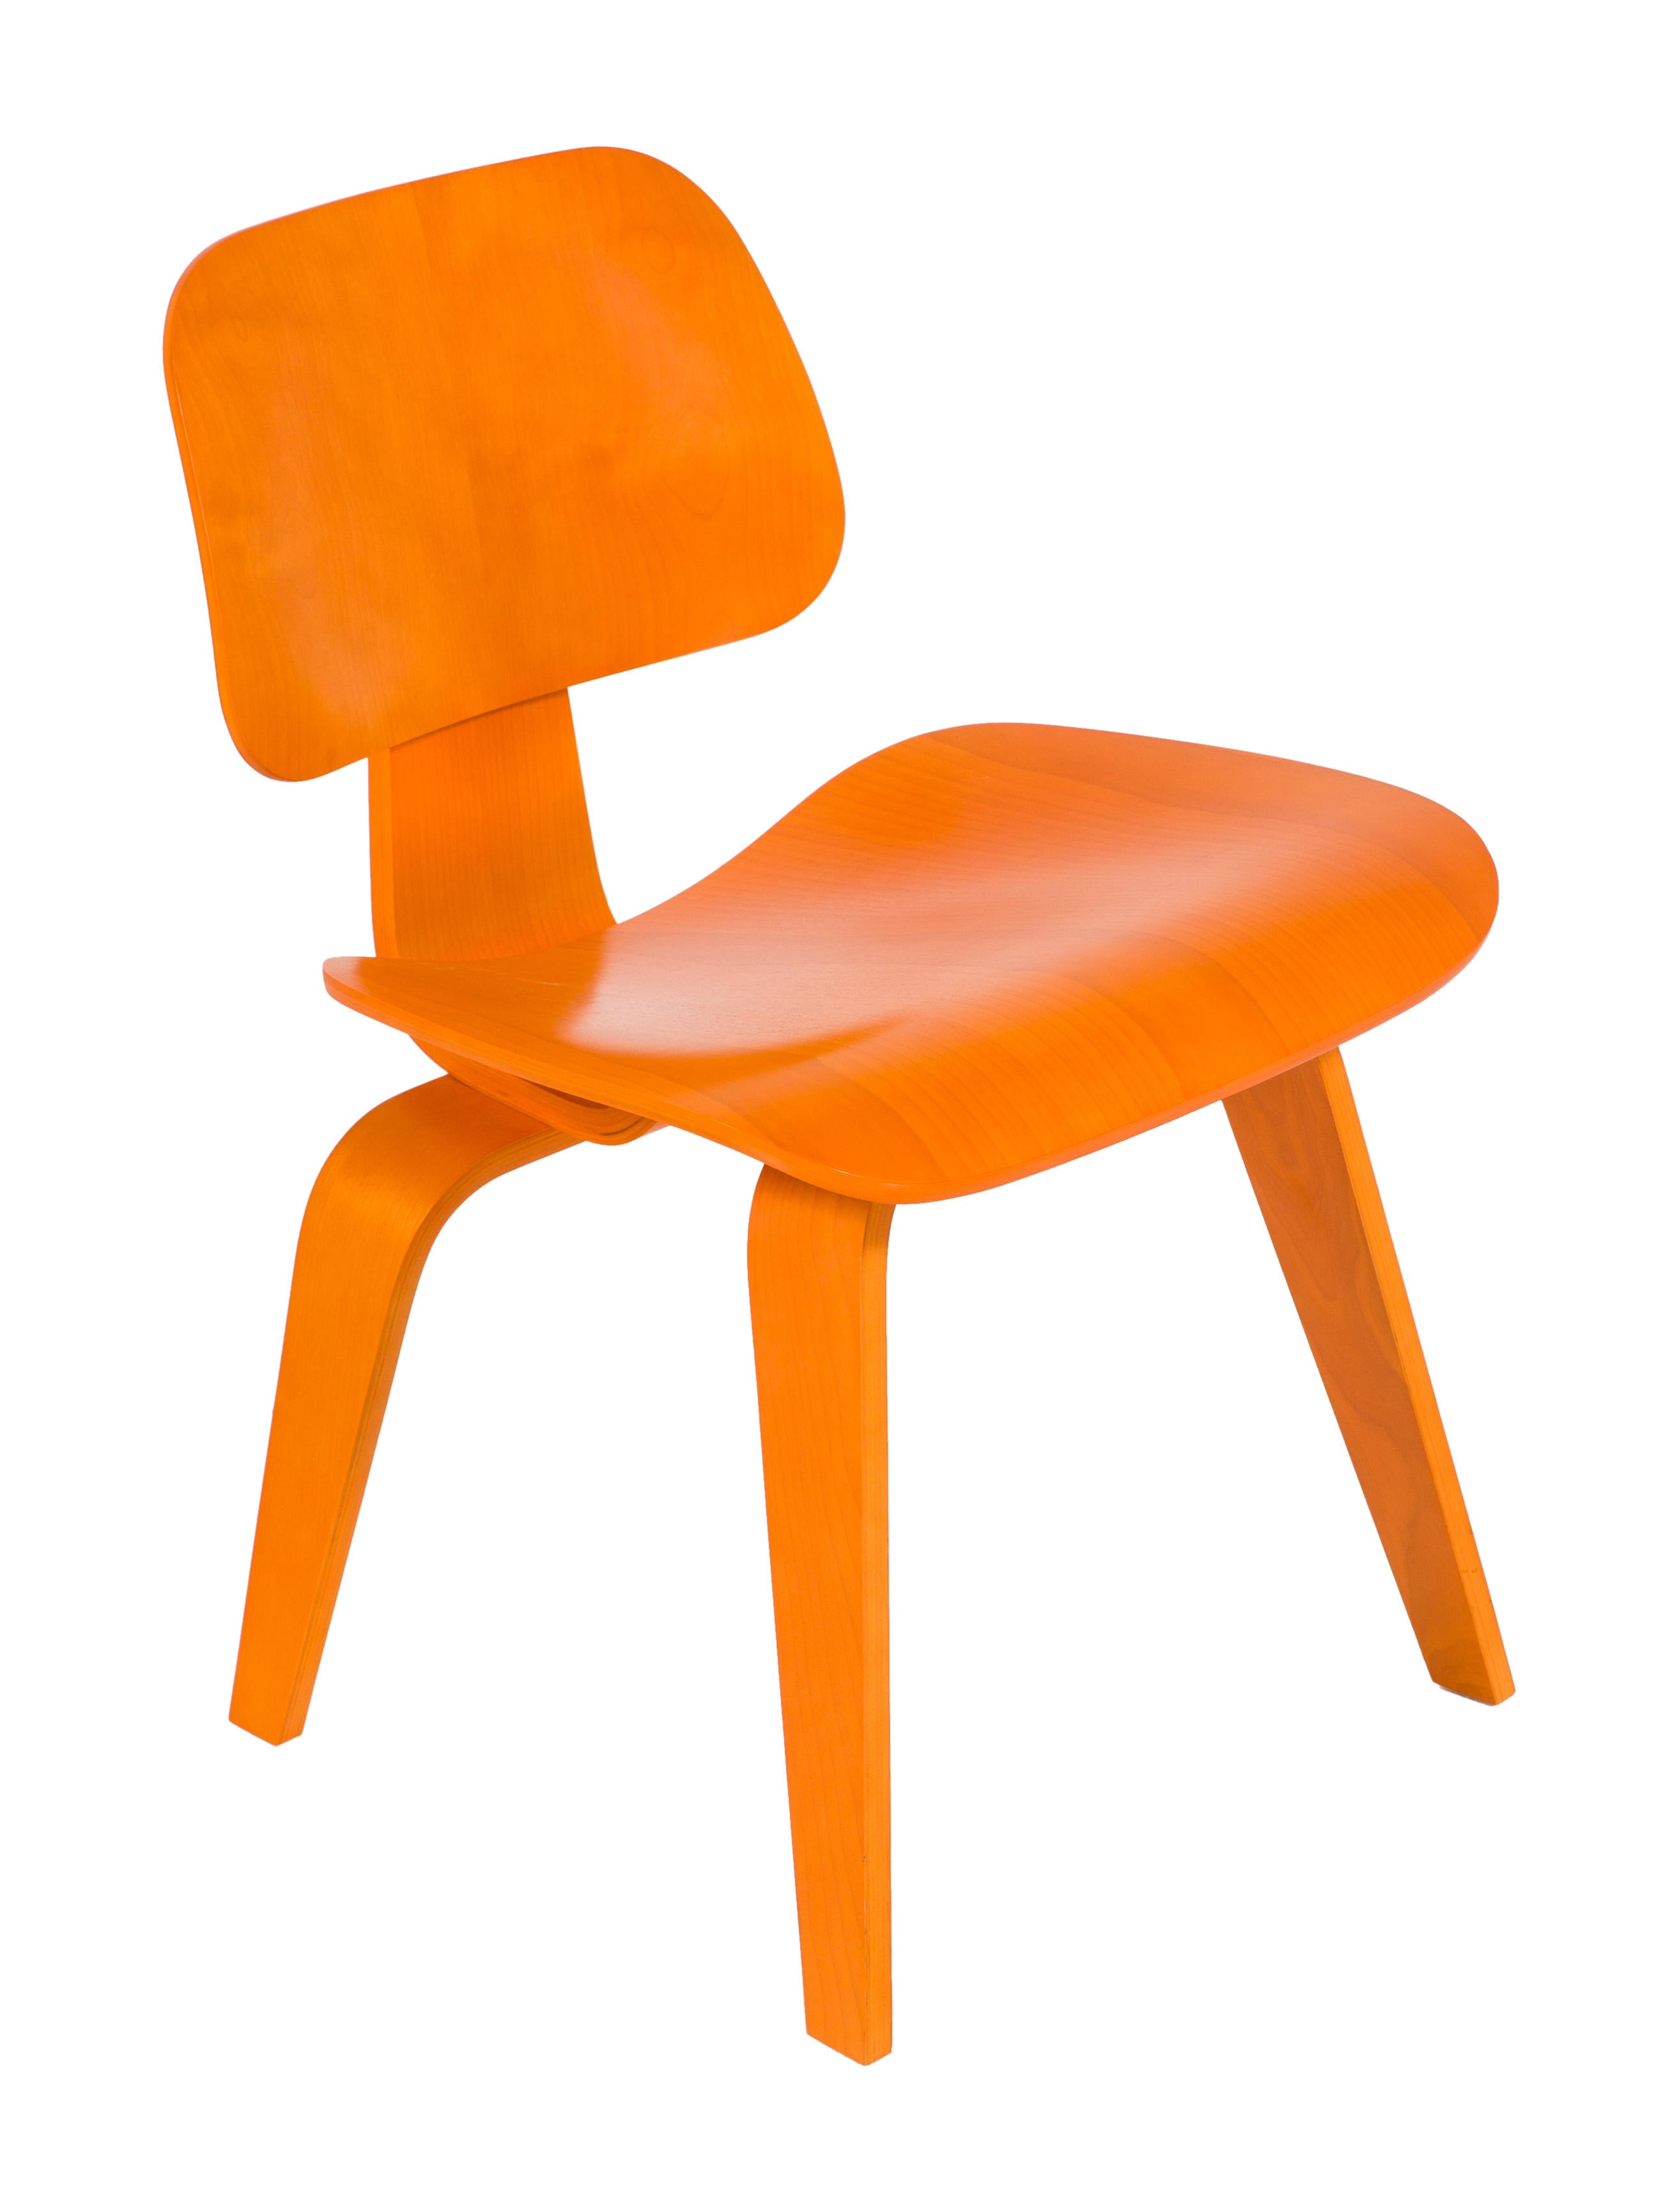 Eames DCW Molded Plywood Chair